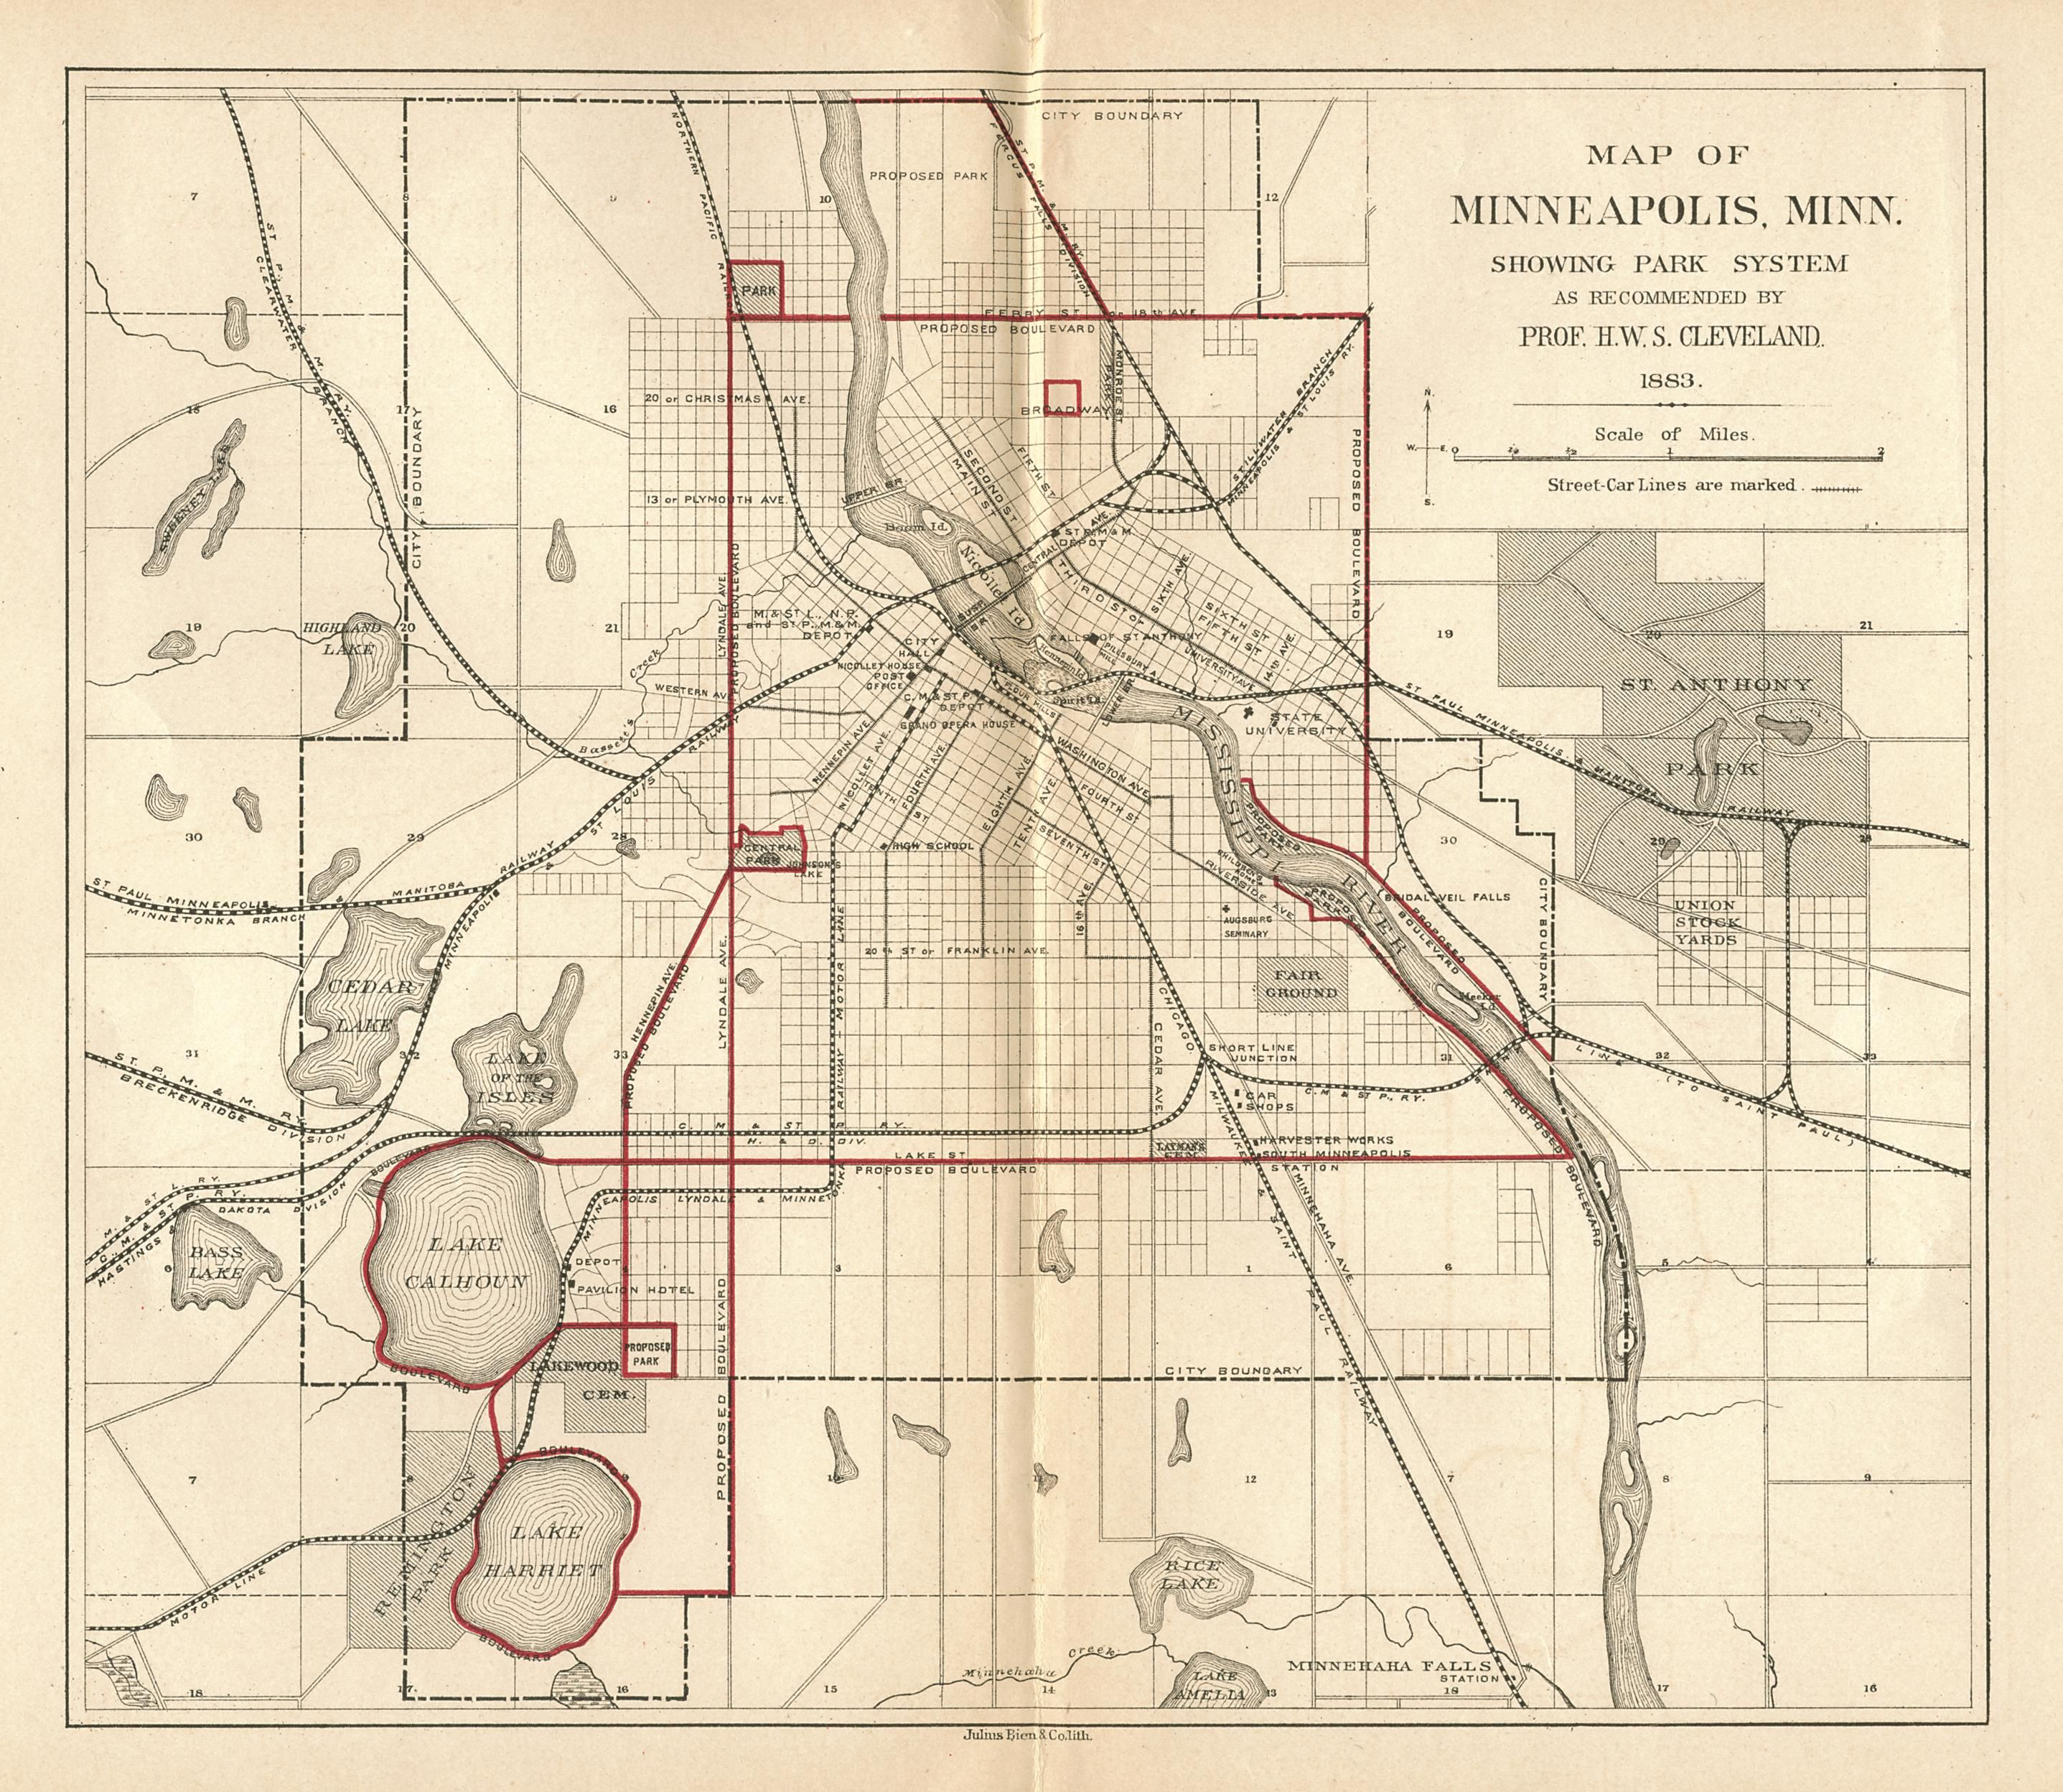 Horace Cleveland proposed this system of parks and parkways in 1883